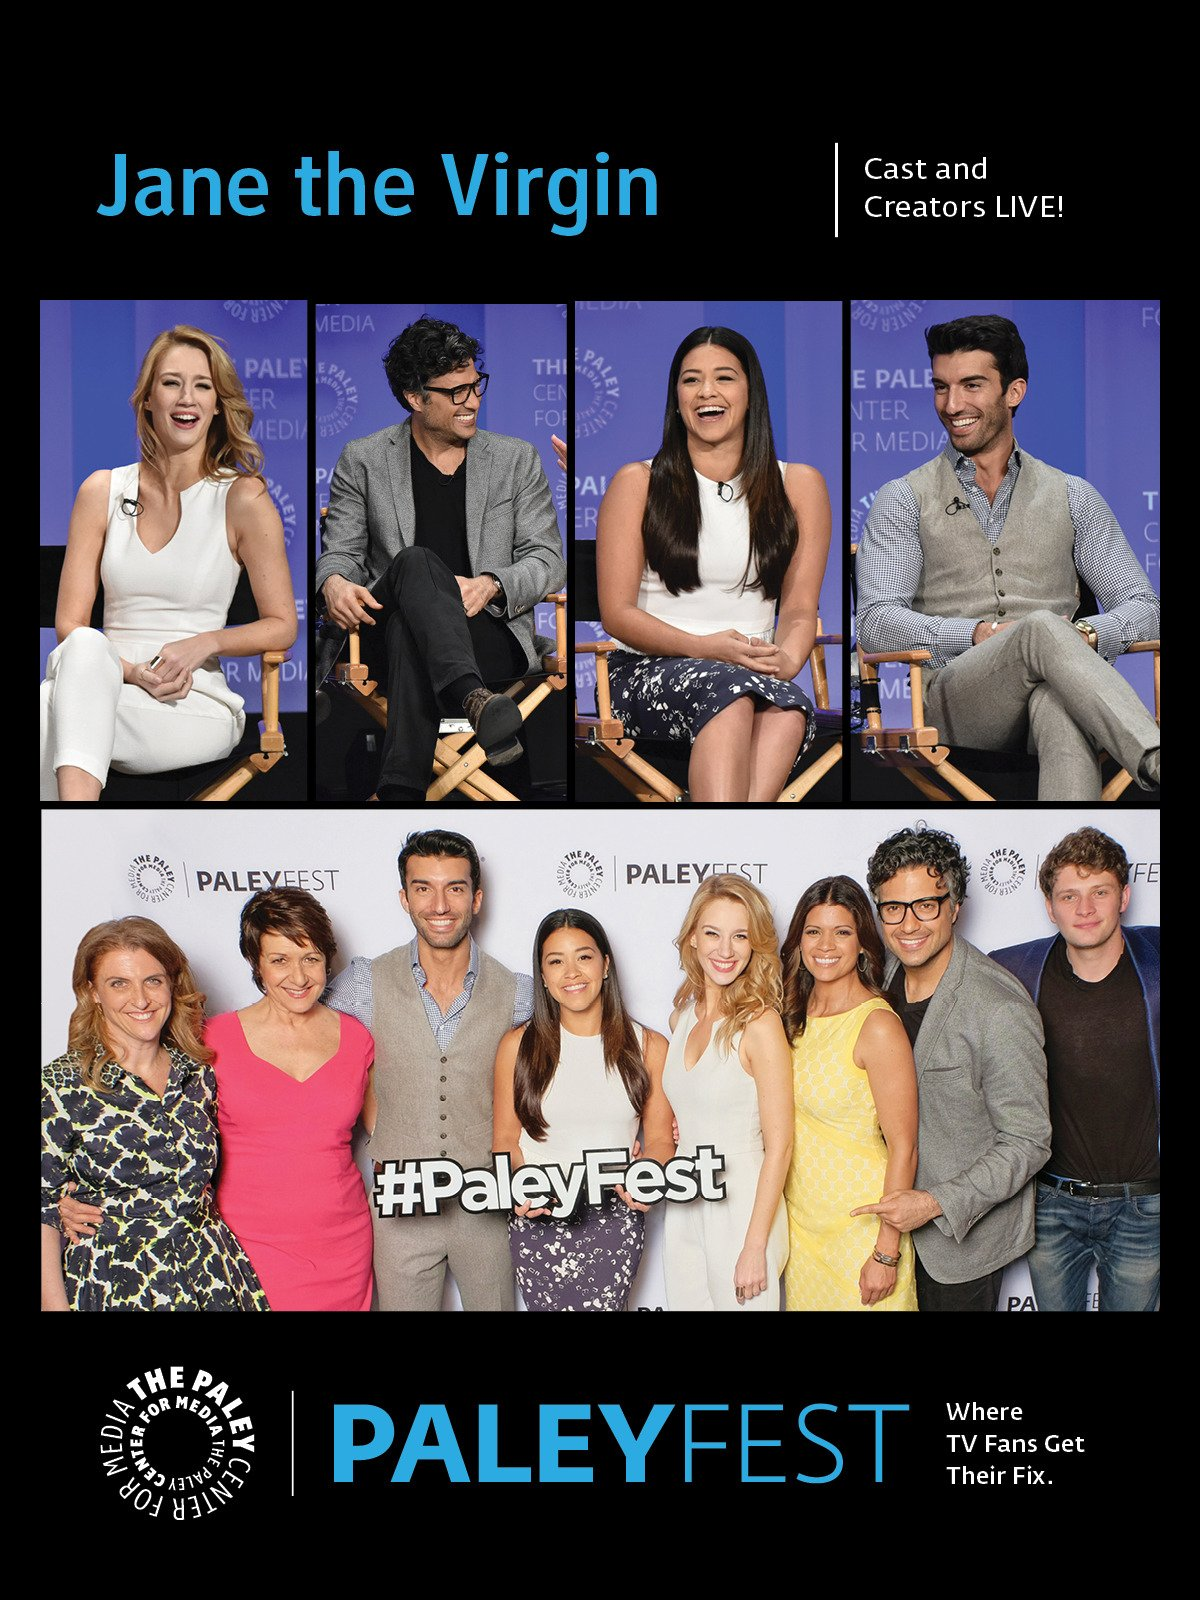 Jane the Virgin: Cast and Creators Live at PaleyFest LA